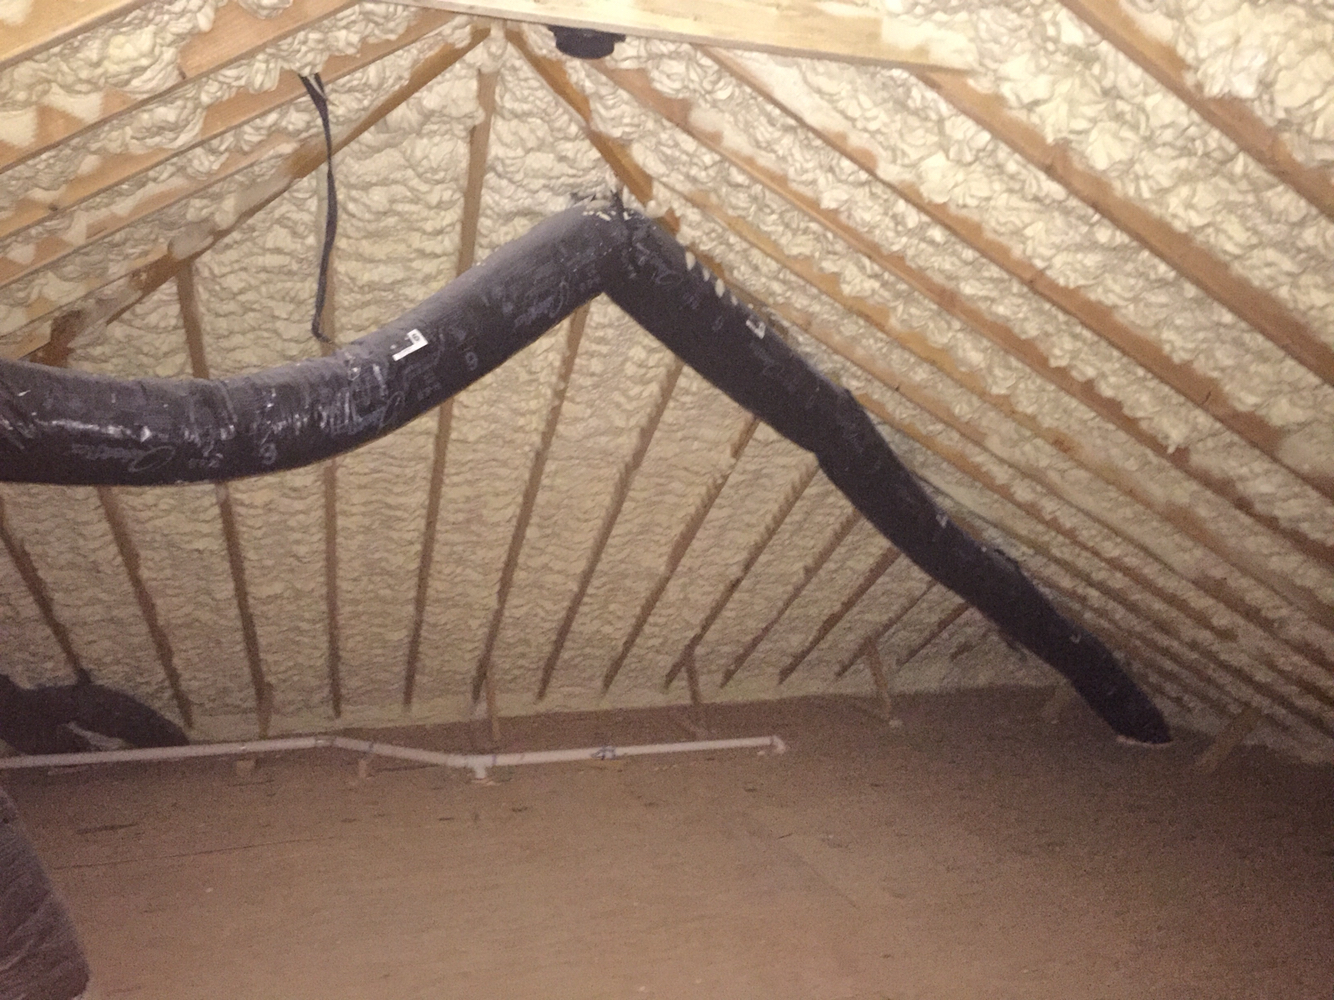 Roof Spray Foam Insulation In Attic Wonderful Roof Insulation R for sizing 1334 X 1000